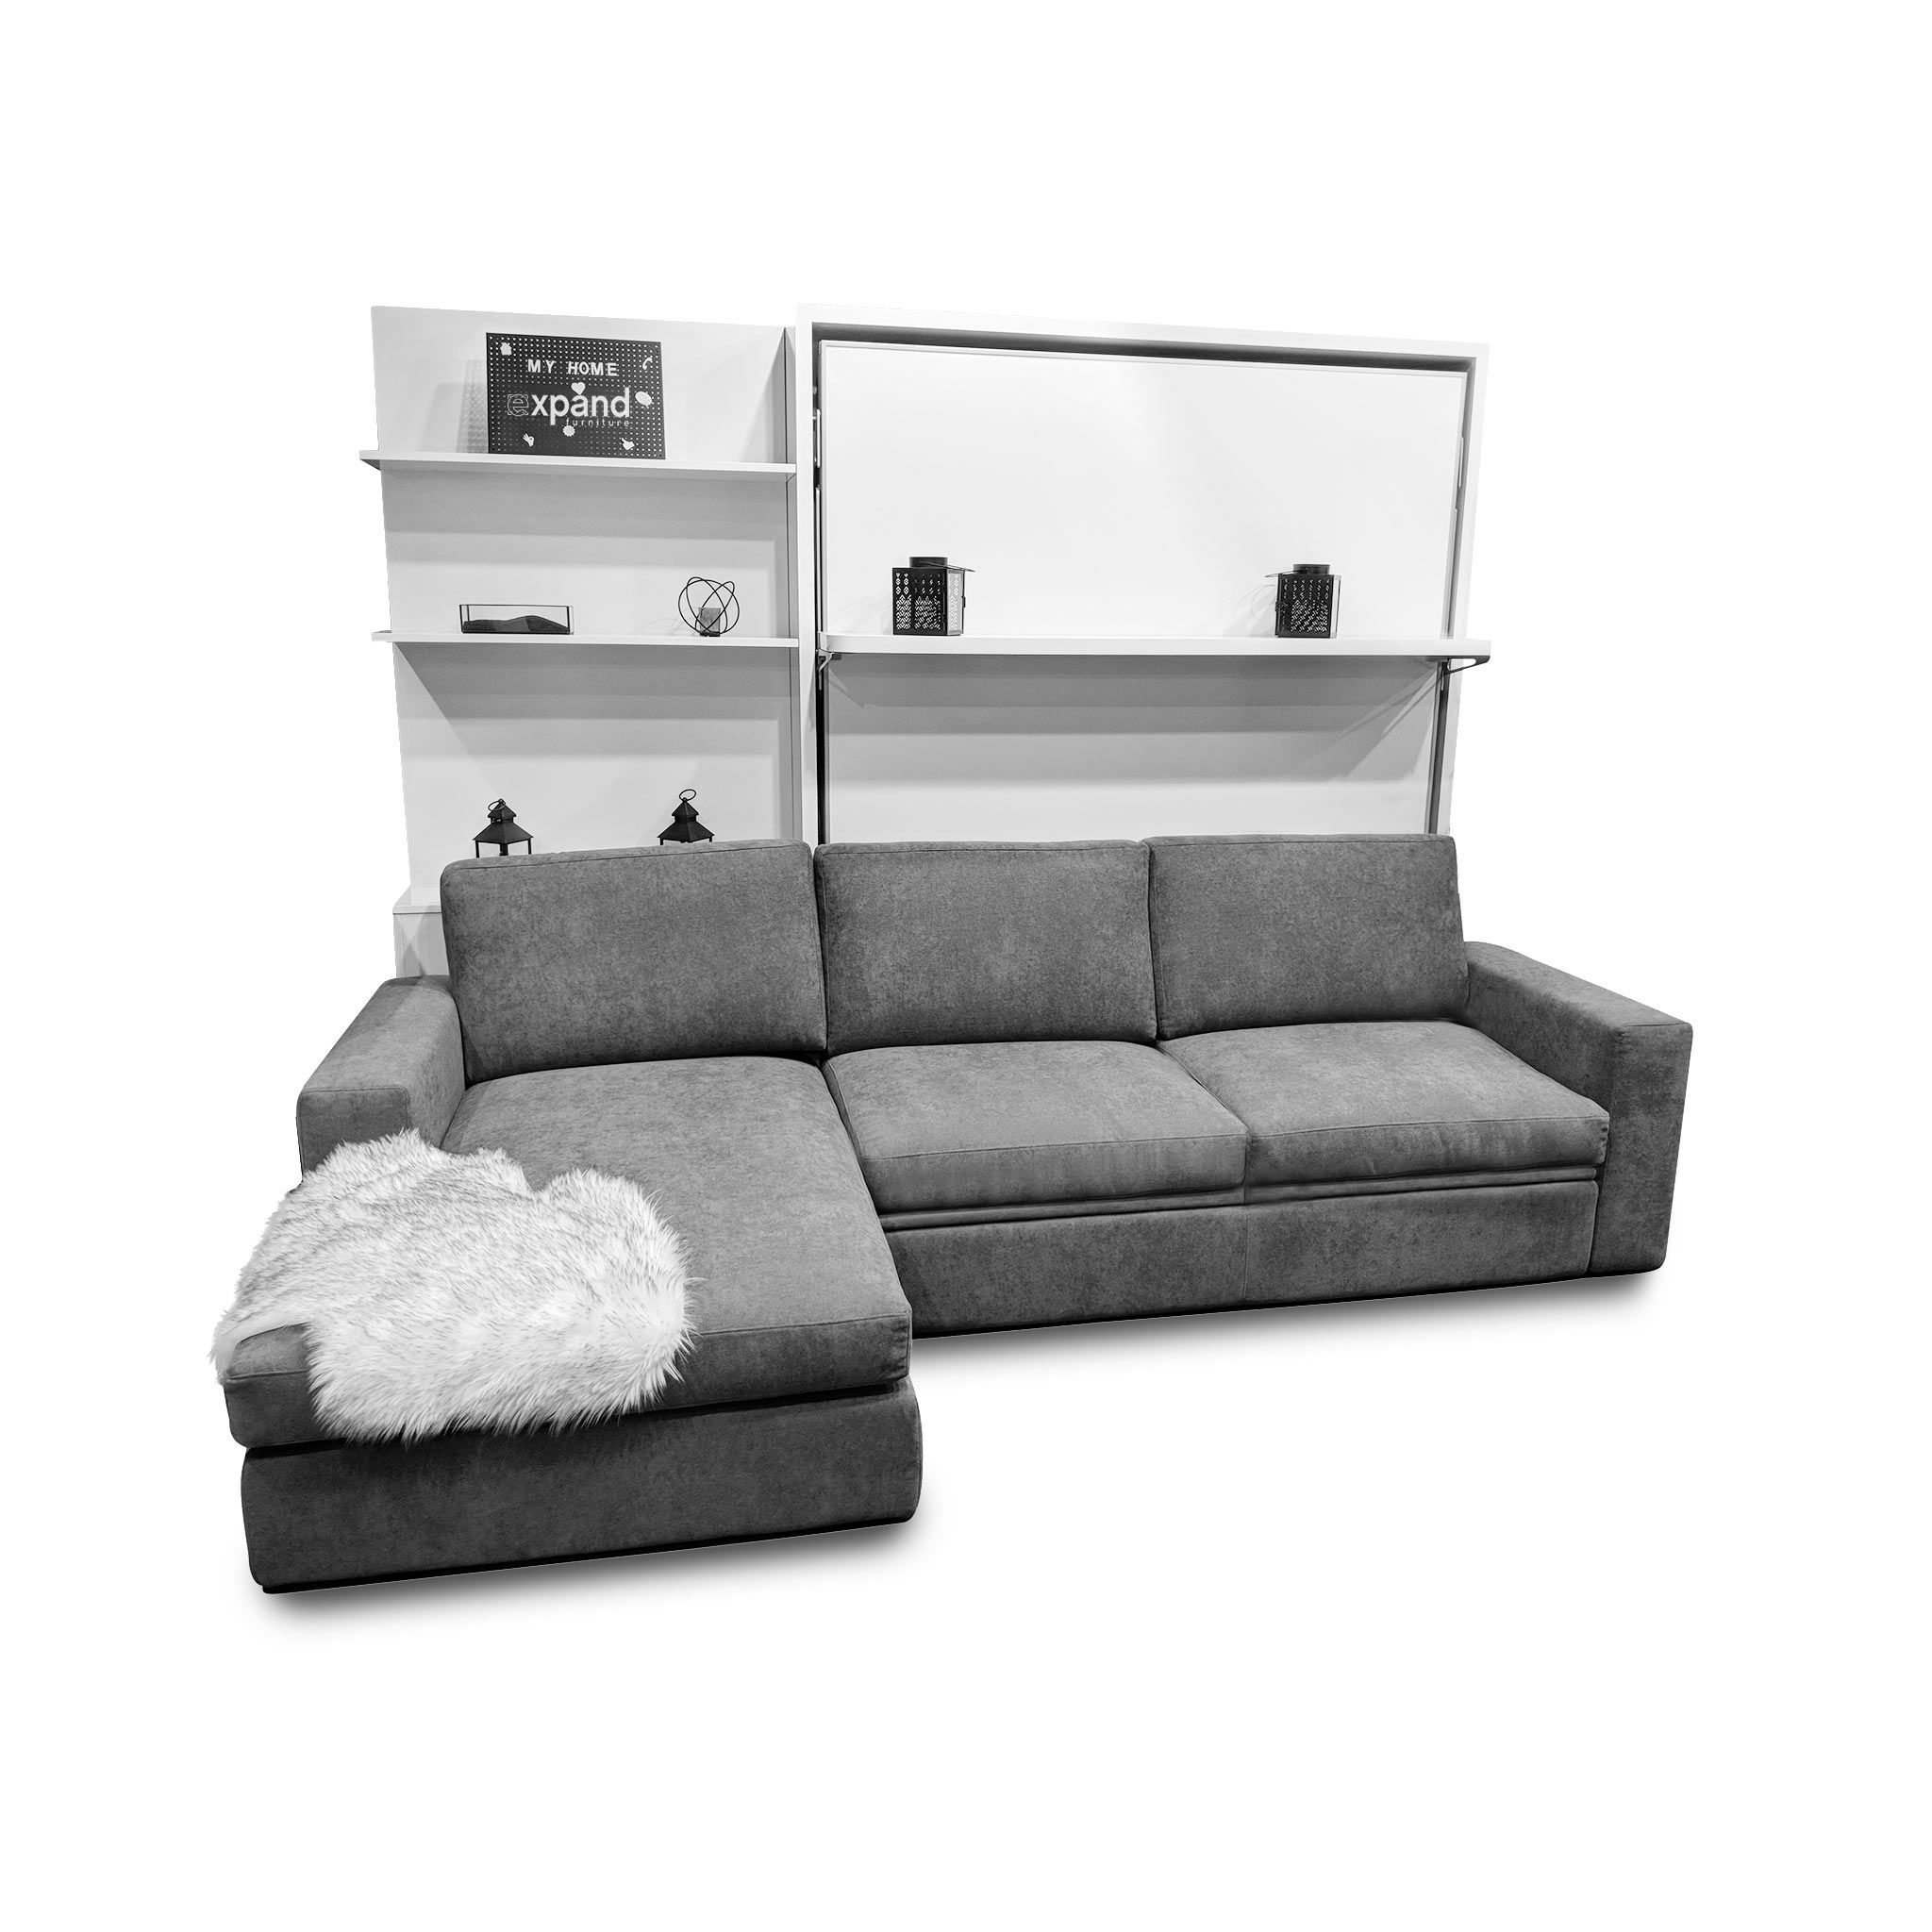 Compatto Shelf Wall Bed over Sectional Sofa Bed wall